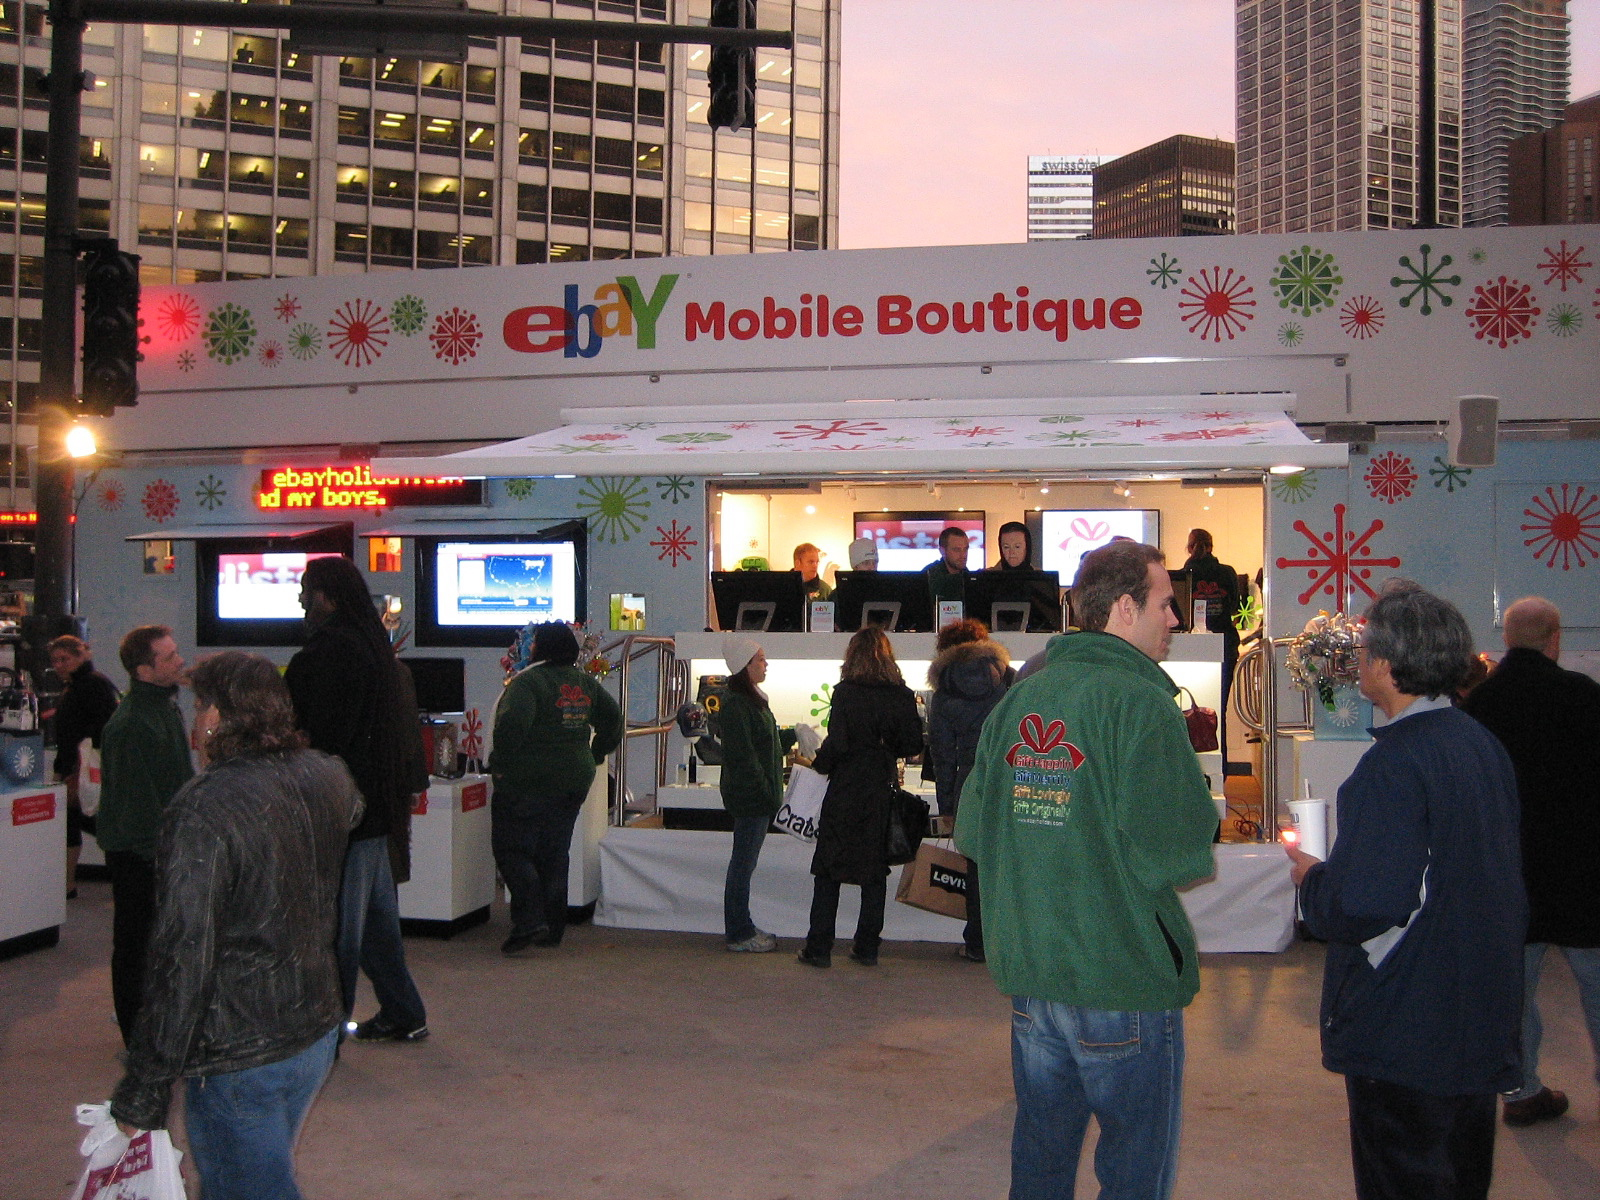 Front of eBay Mobile Boutique